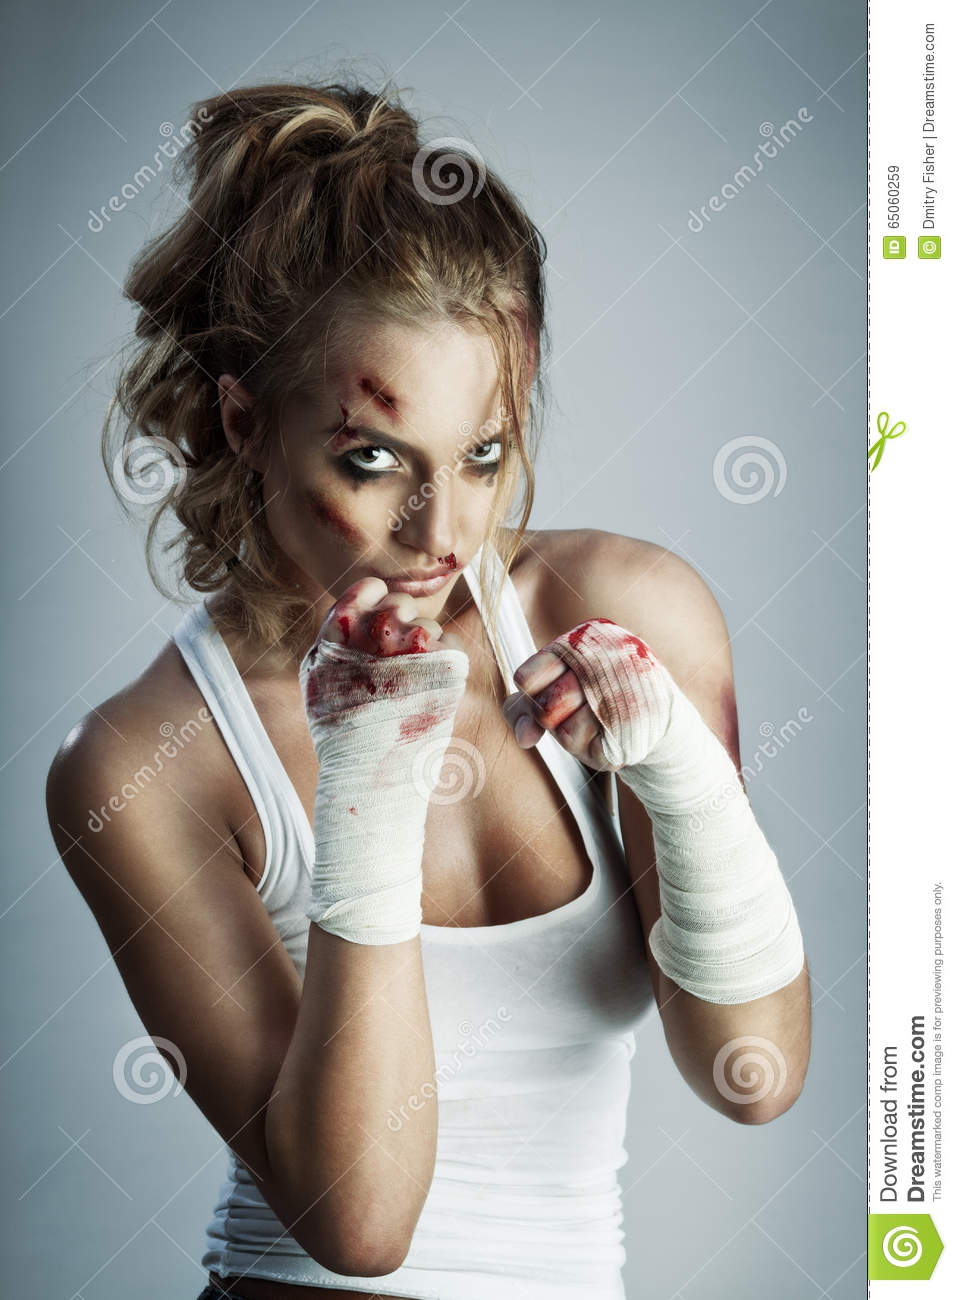 Female Boxing Bruises Wiring Diagrams Authorzj Keyword Voltage Control Oscillator Circuit Fromseekic Images Gallery